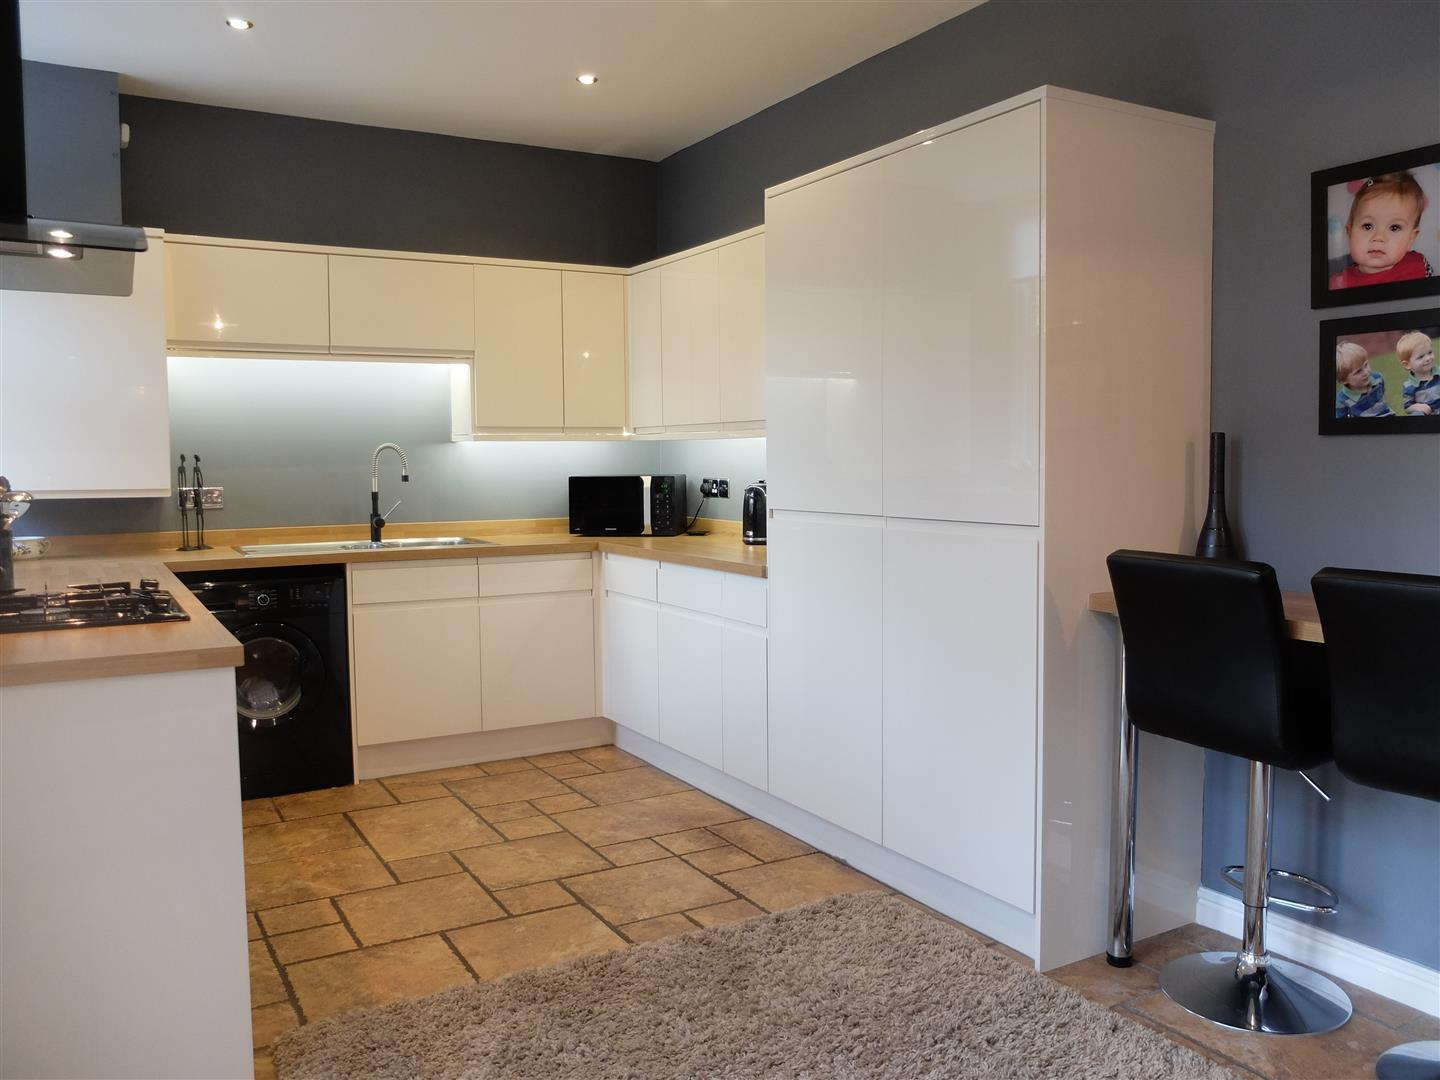 4 Bedrooms House On Sale 5 Oval Court Carlisle